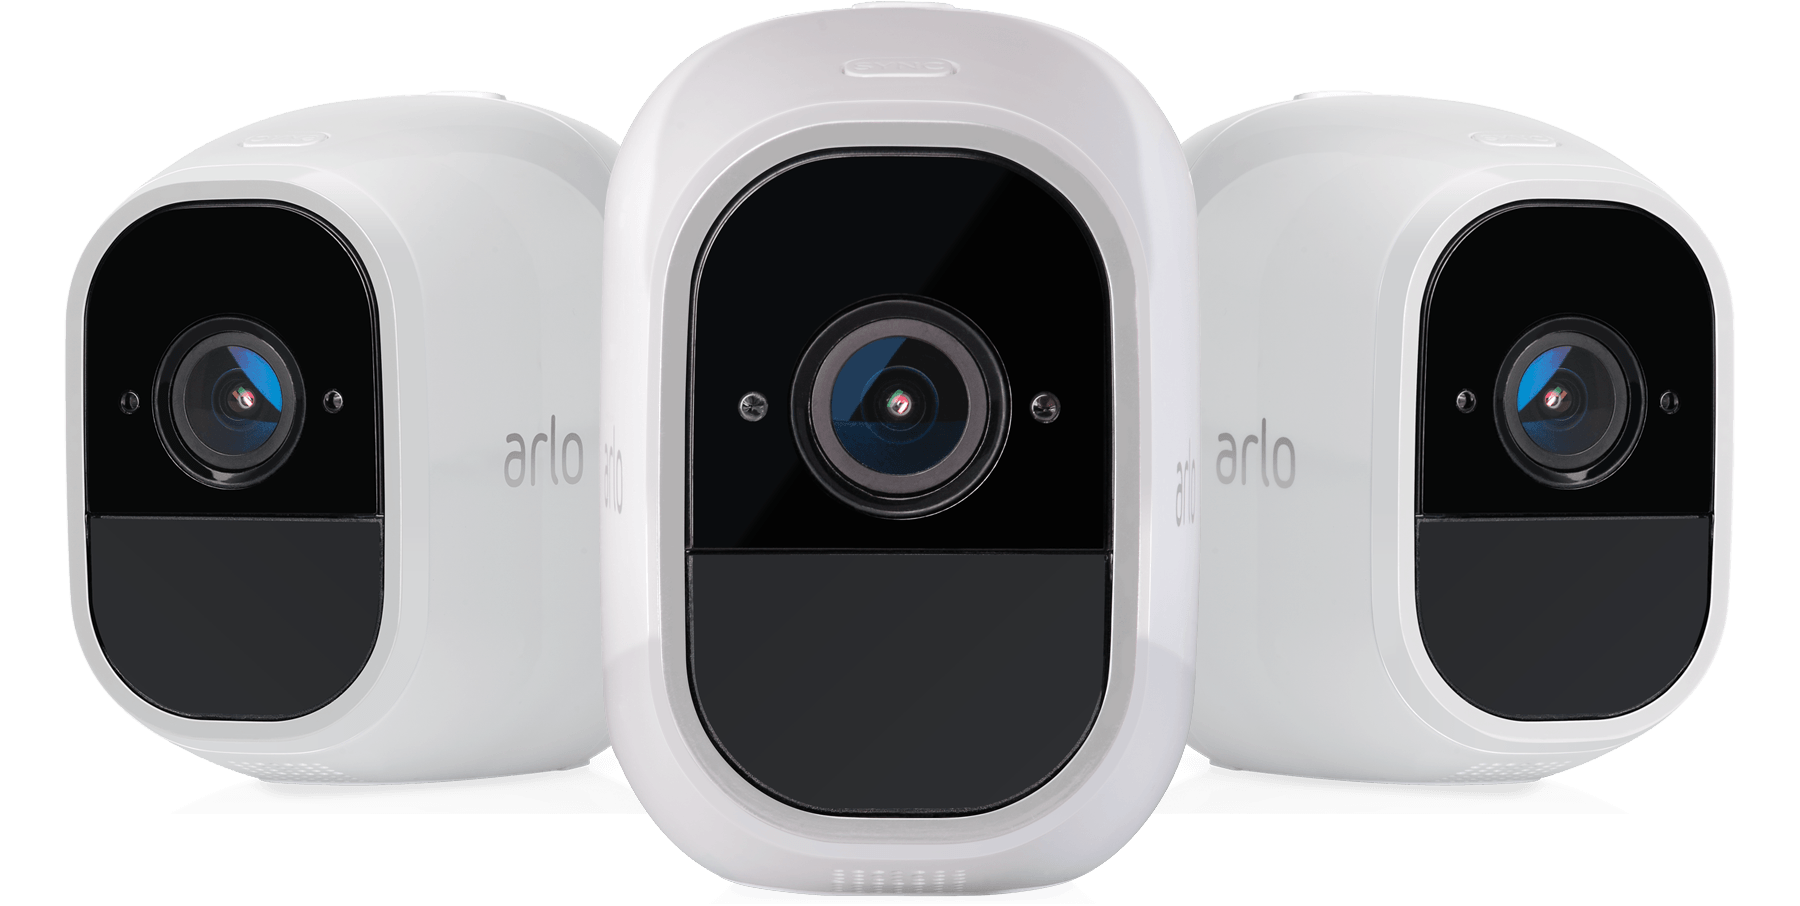 How To Troubleshoot Arlo Camera Motion Detection Not Working